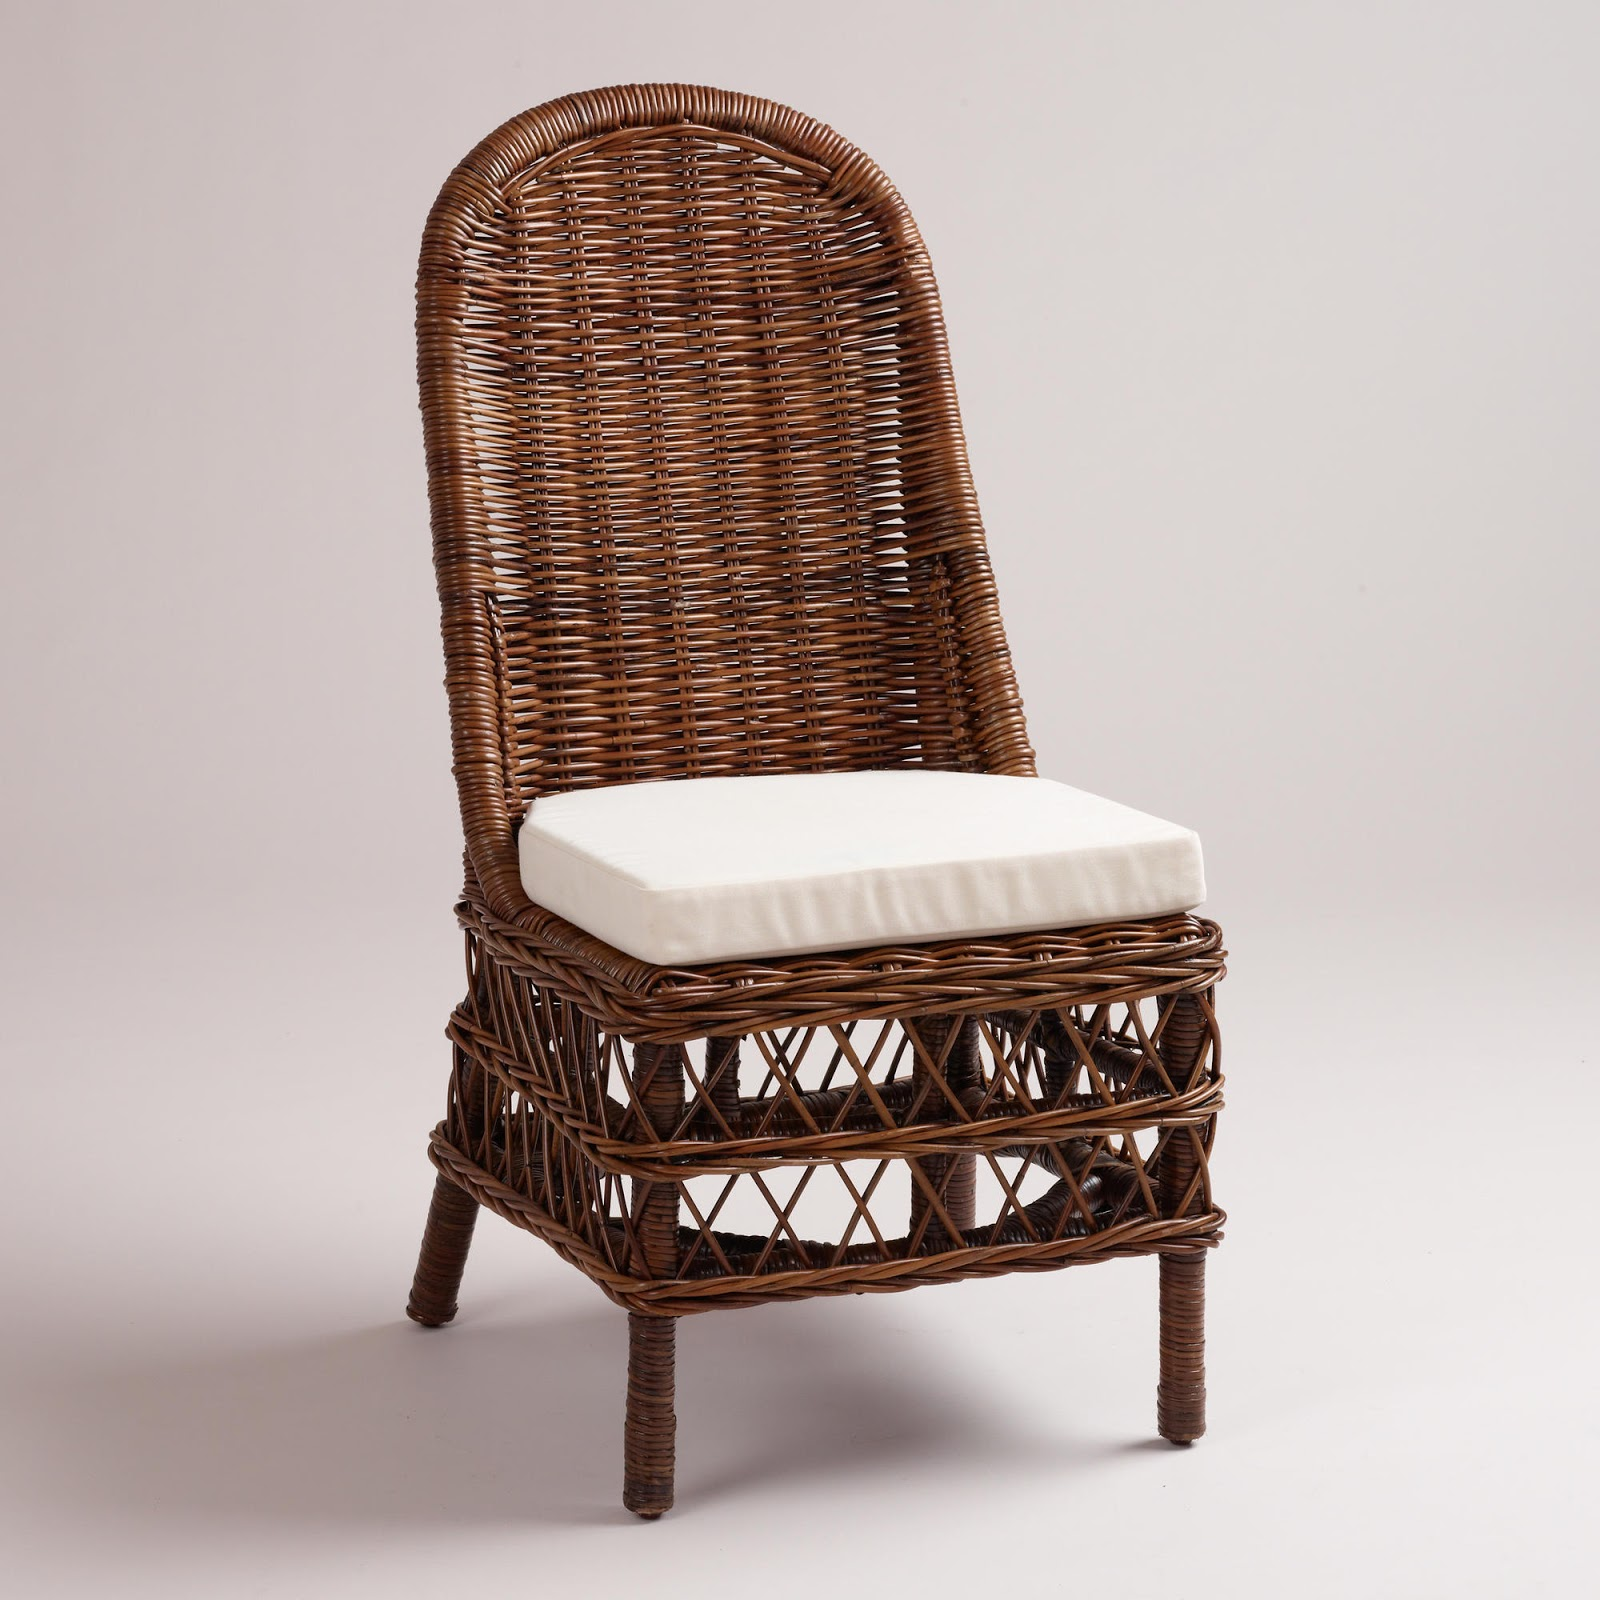 Woven Dining Chair Roman Exercise Vignette Design Musical Rattan Chairs